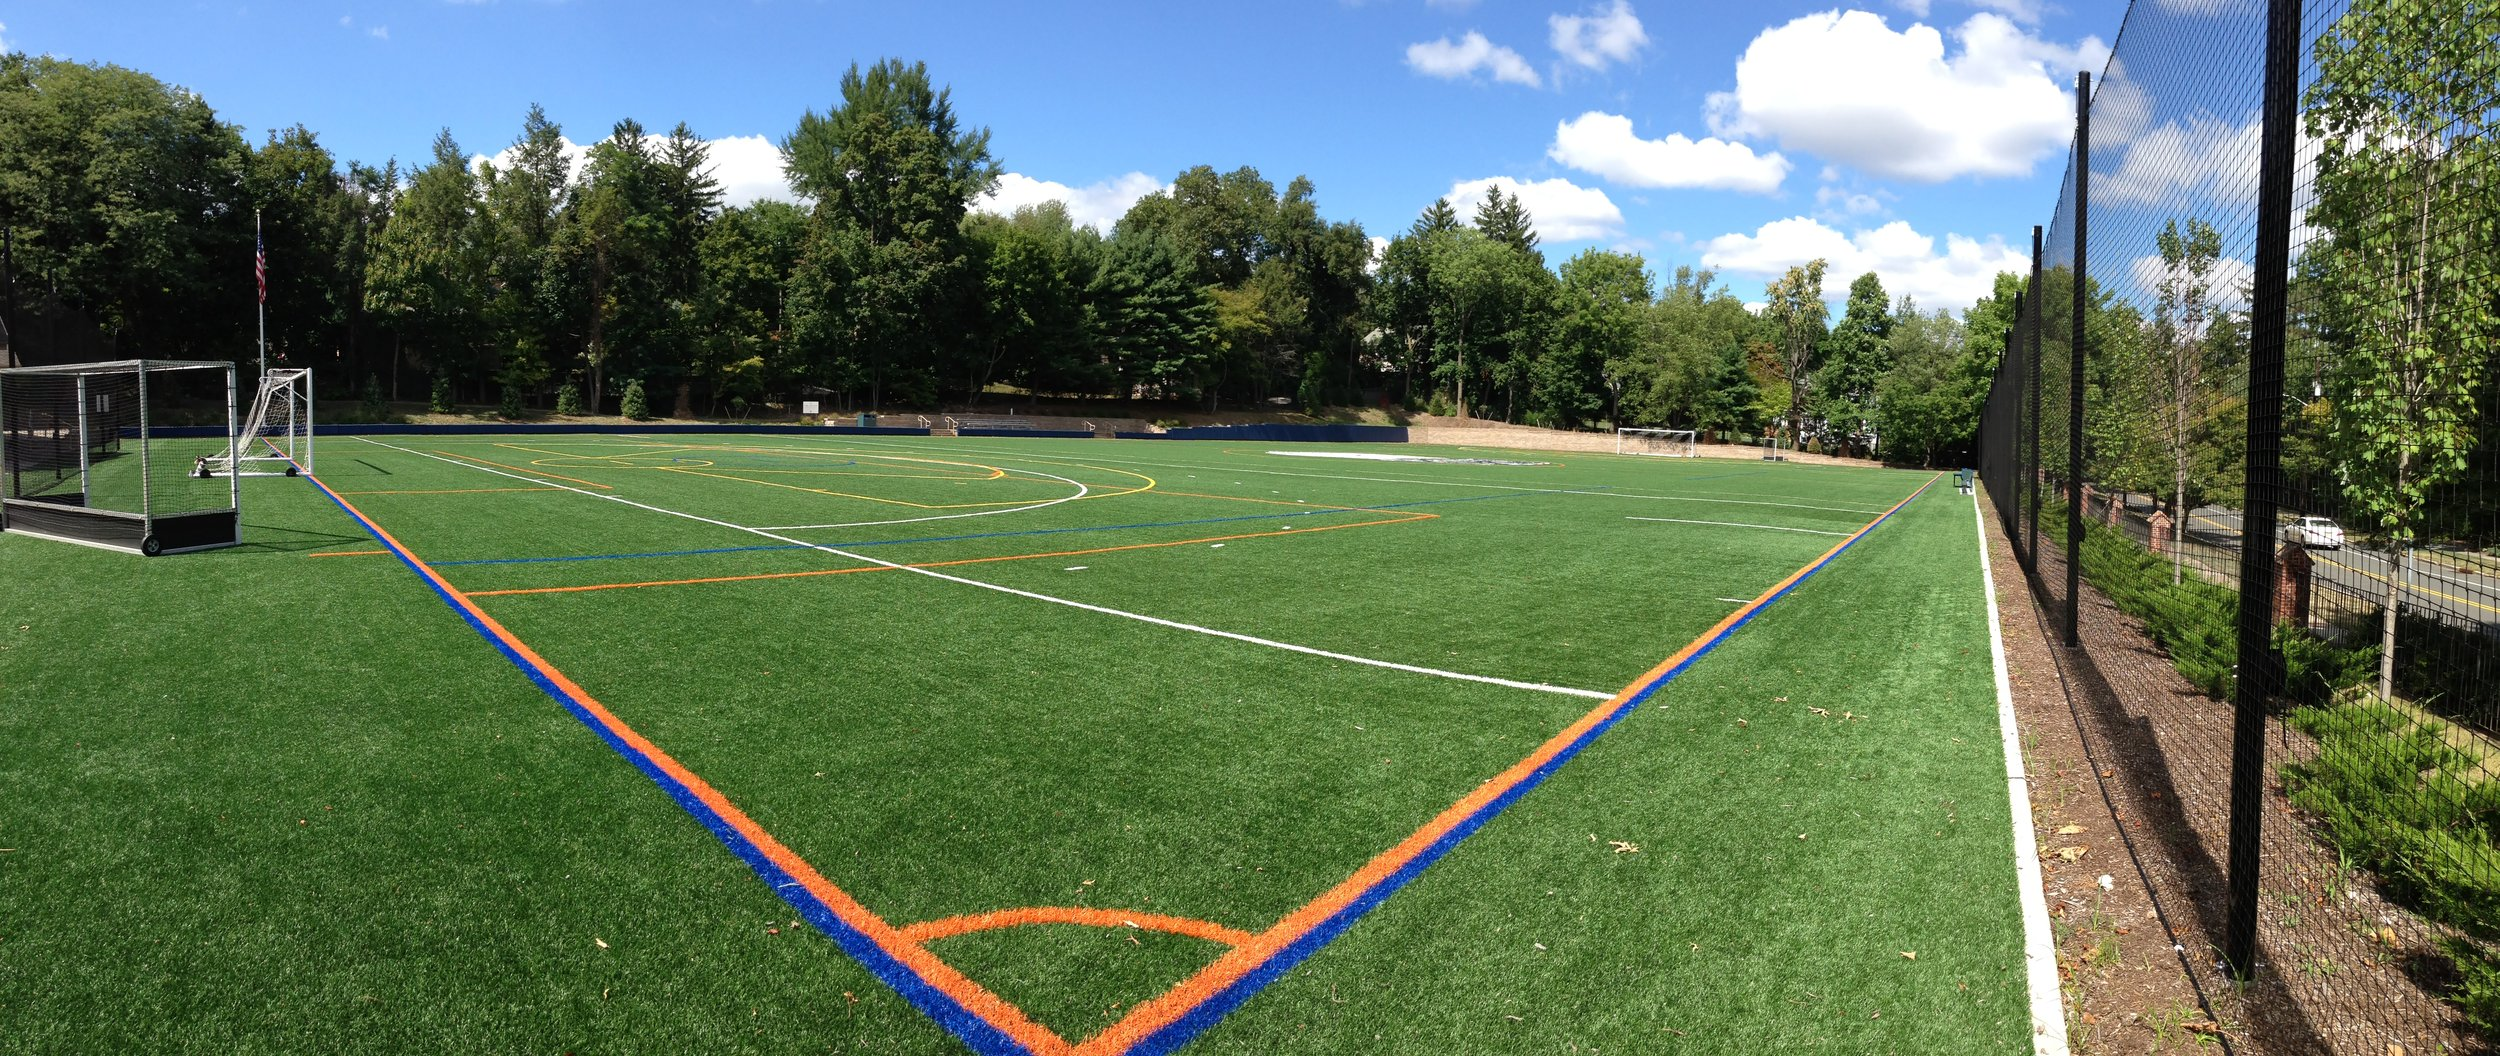 montclair kimberly academy upper mountain avenue field -